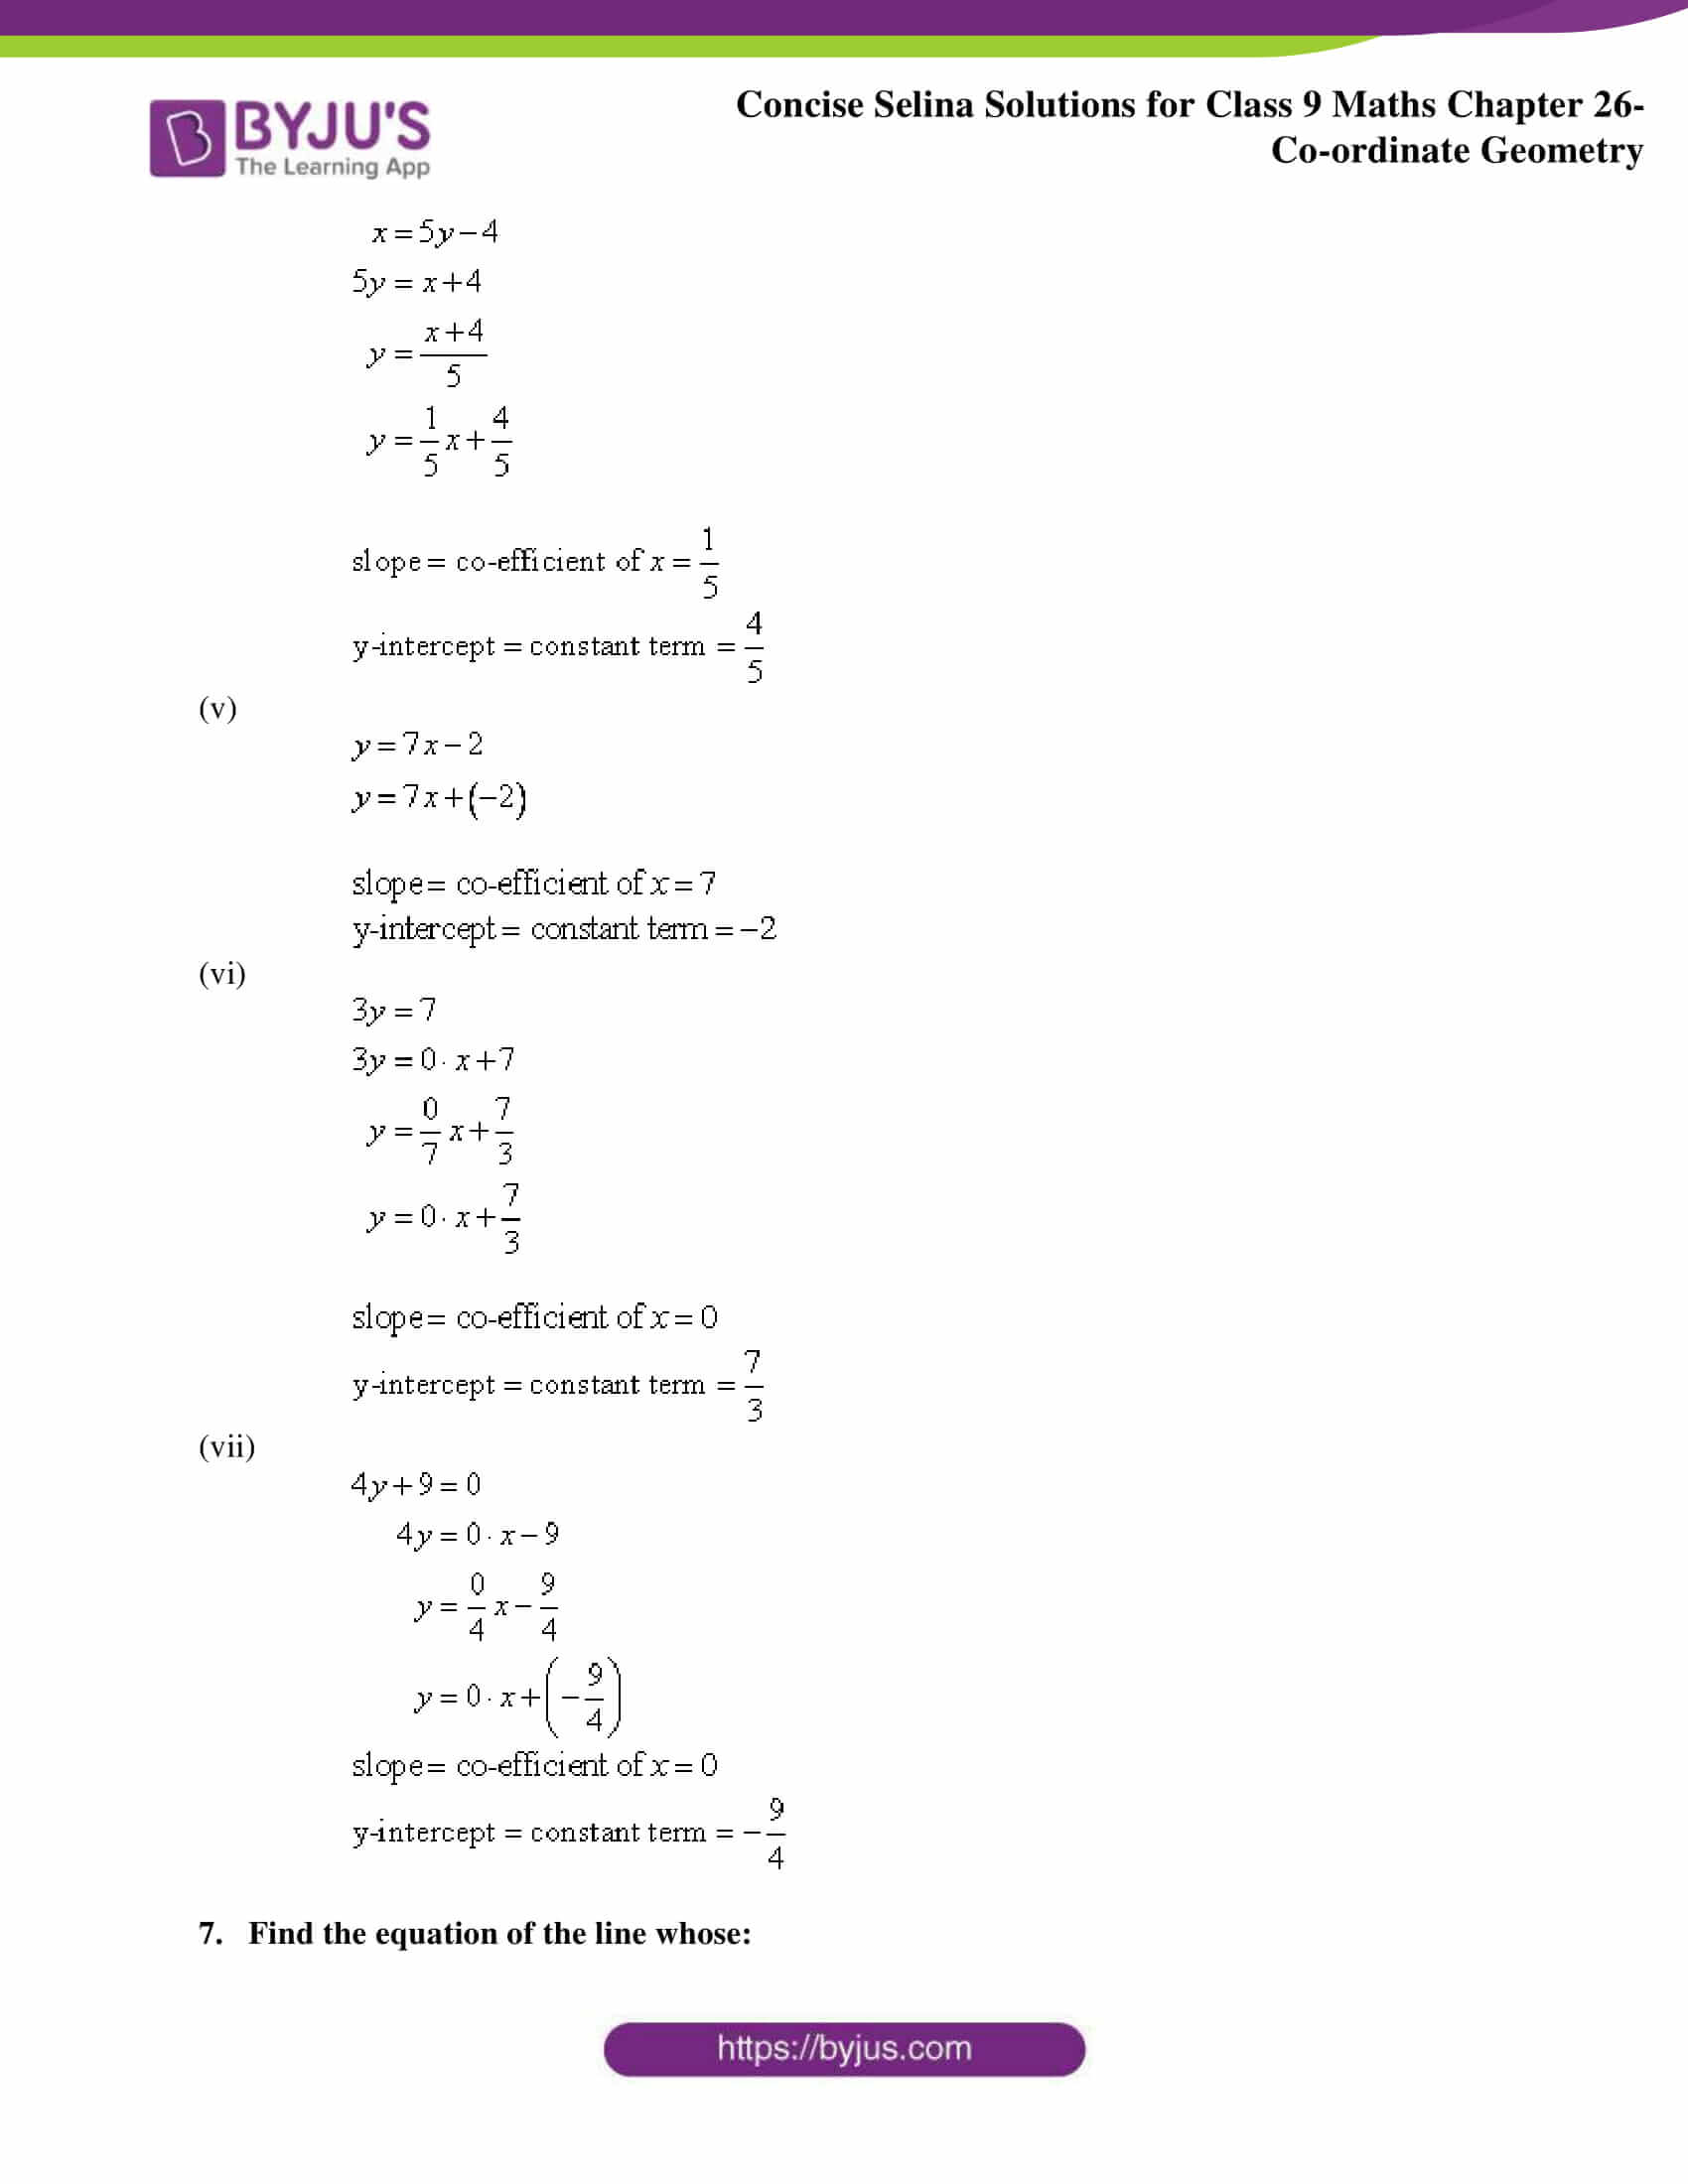 Selina Solutions for Class 9 Maths Chapter 26 part 49